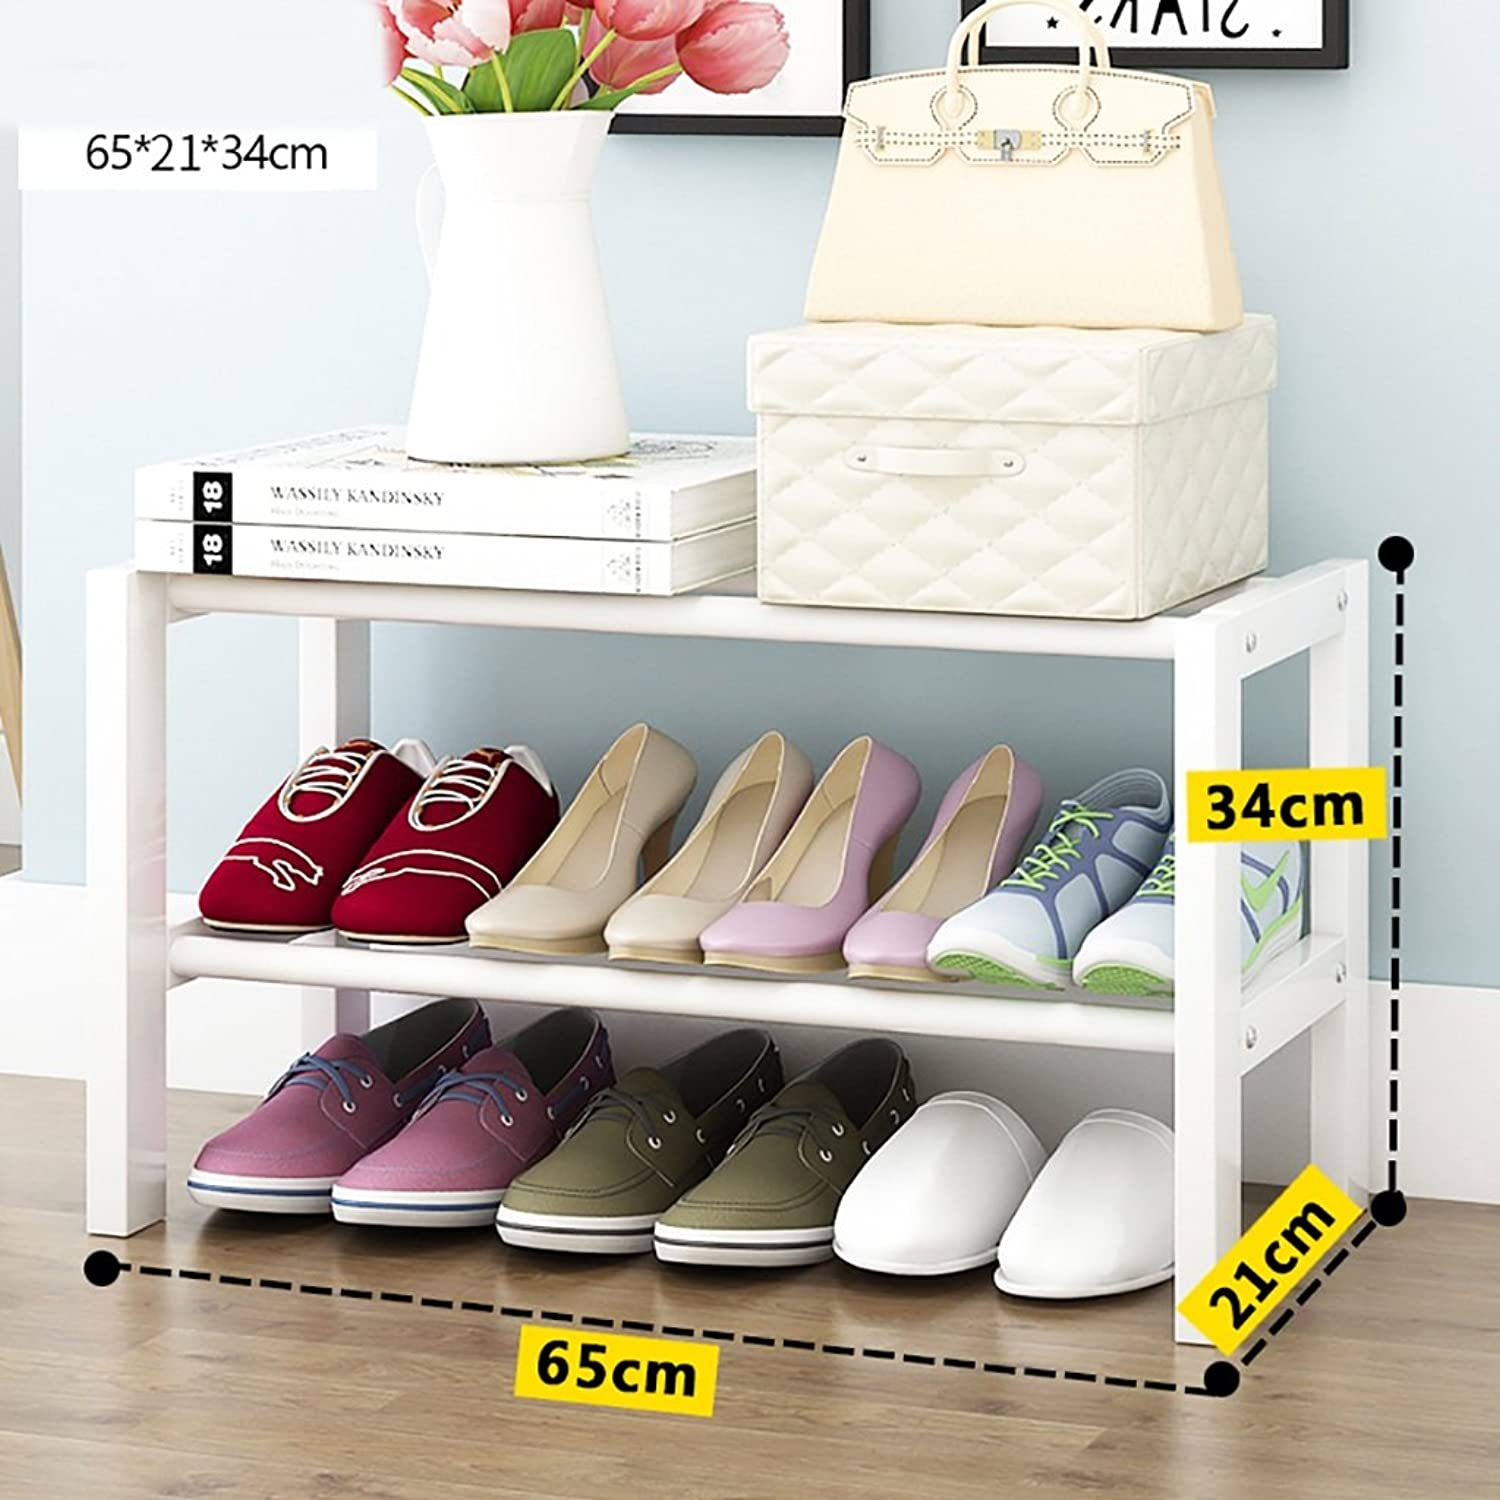 shoes Bench Organizing Rack Solid Wood shoes Rack Home Simple Small shoes Rack dust shoes Rack White shoes Storage Rack (Size   65cm)